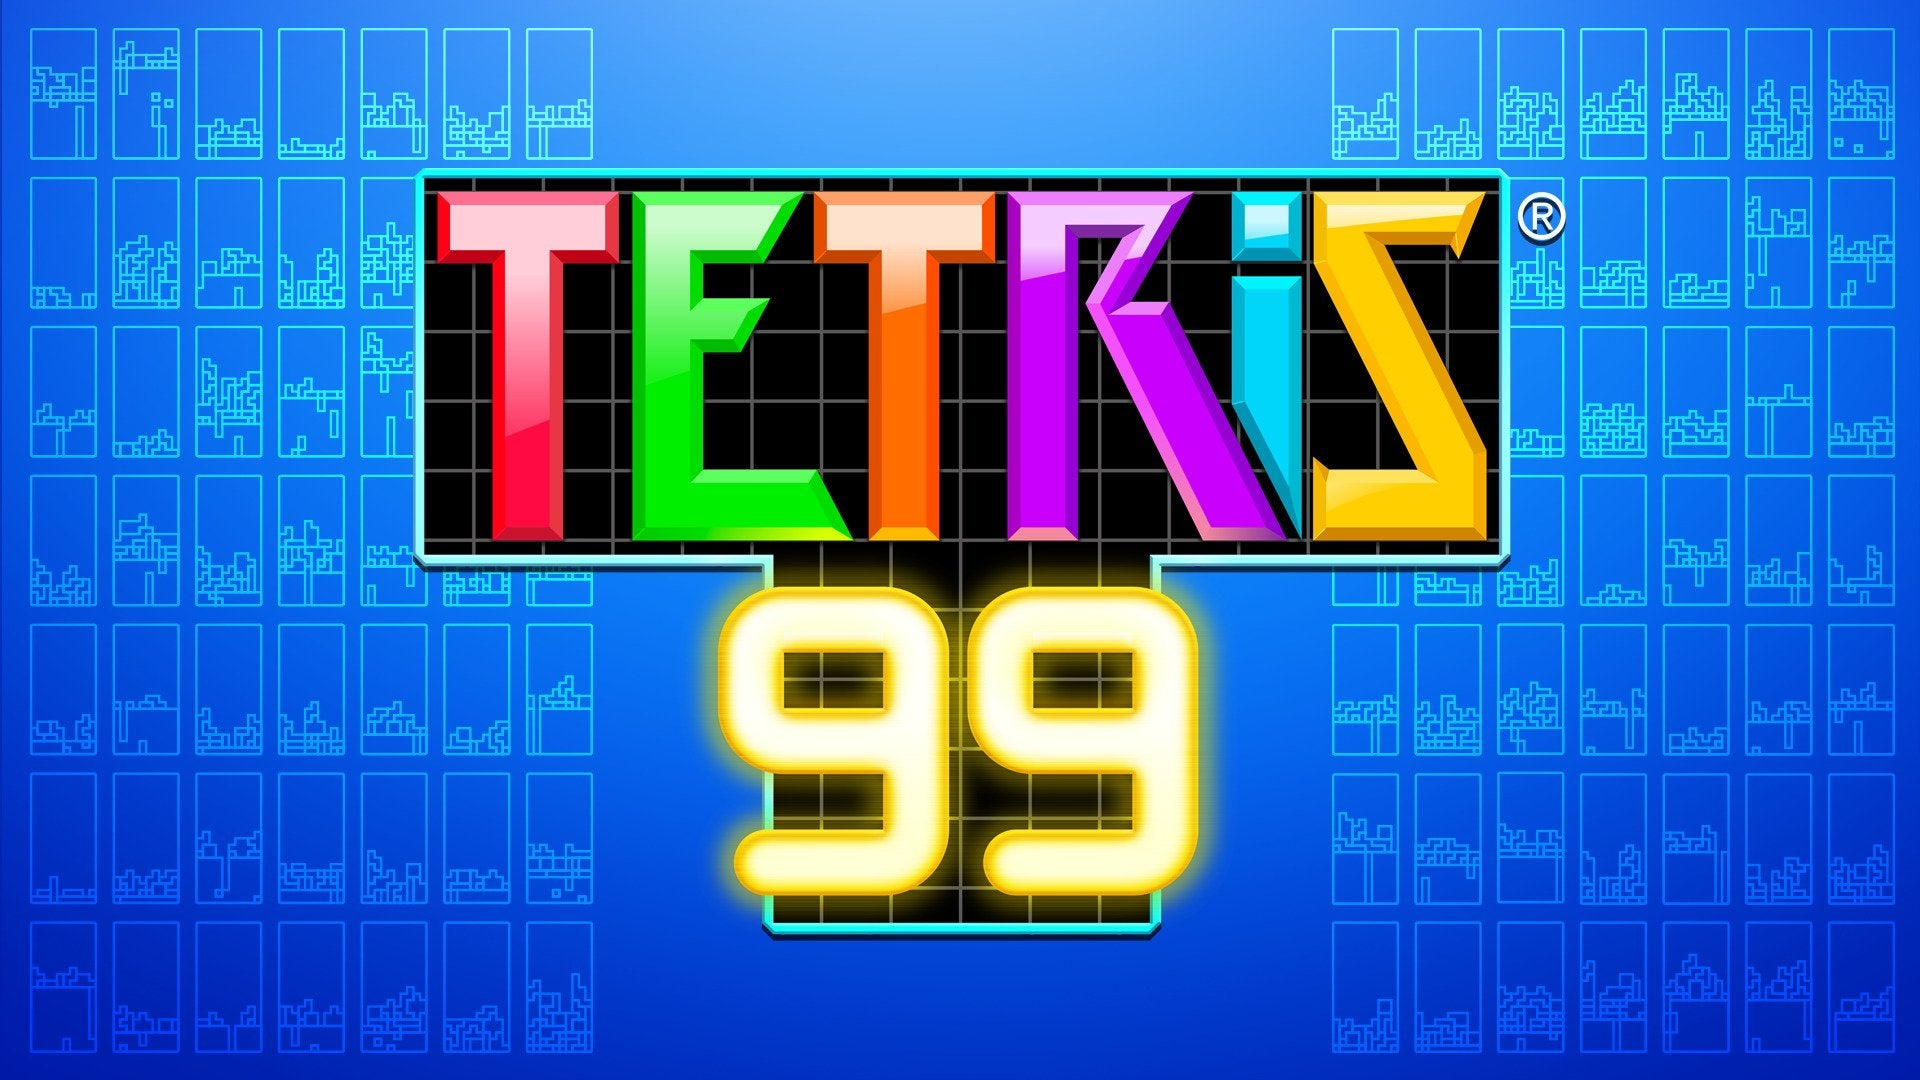 Tetris Is The Latest Series To Become A Battle Royale